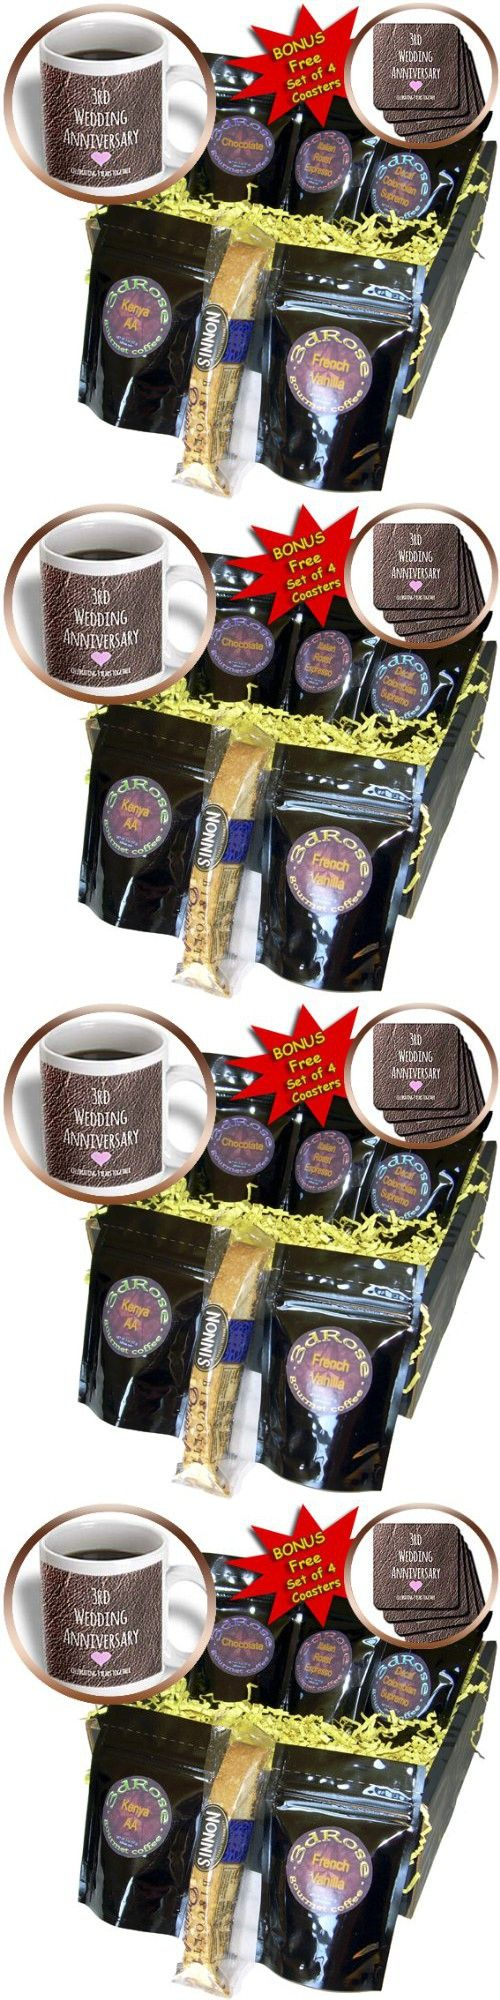 InspirationzStore Occasions - 3rd Wedding Anniversary gift - Leather celebrating 3 years together third anniversaries three yrs - Coffee Gift Baskets - Coffee Gift Basket (cgb_154430_1)